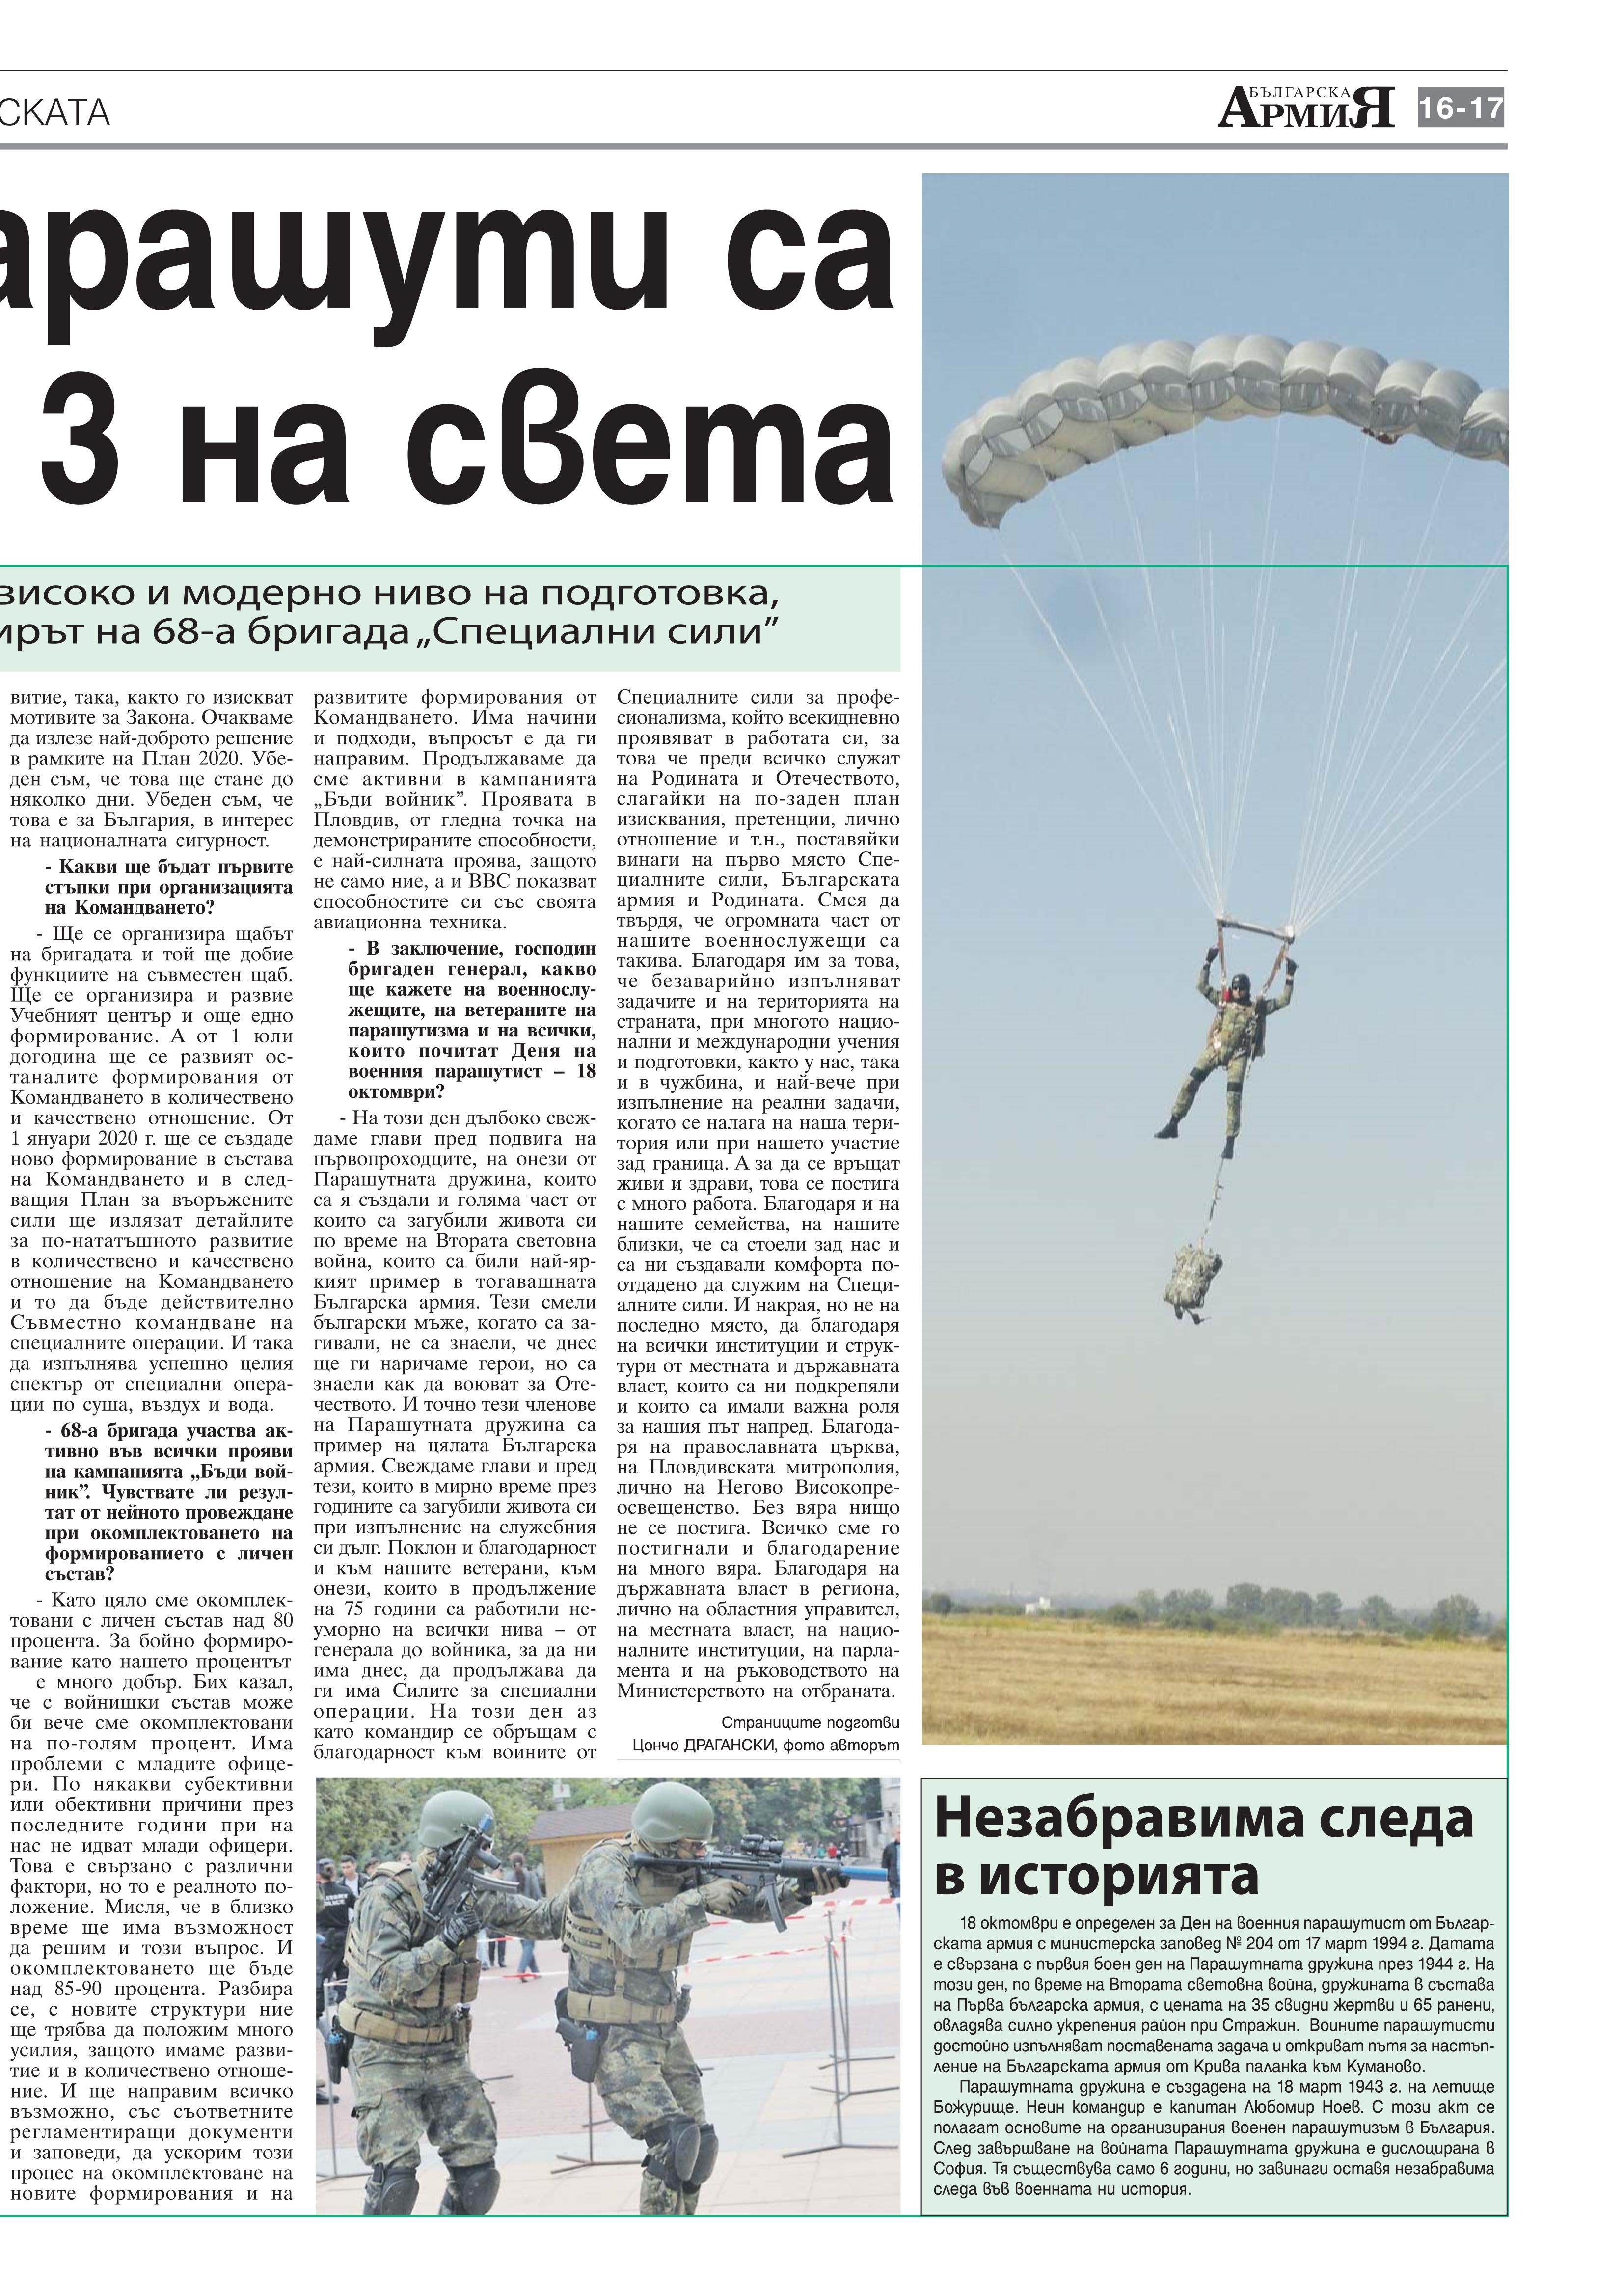 https://www.armymedia.bg/wp-content/uploads/2015/06/17.page1_-112.jpg